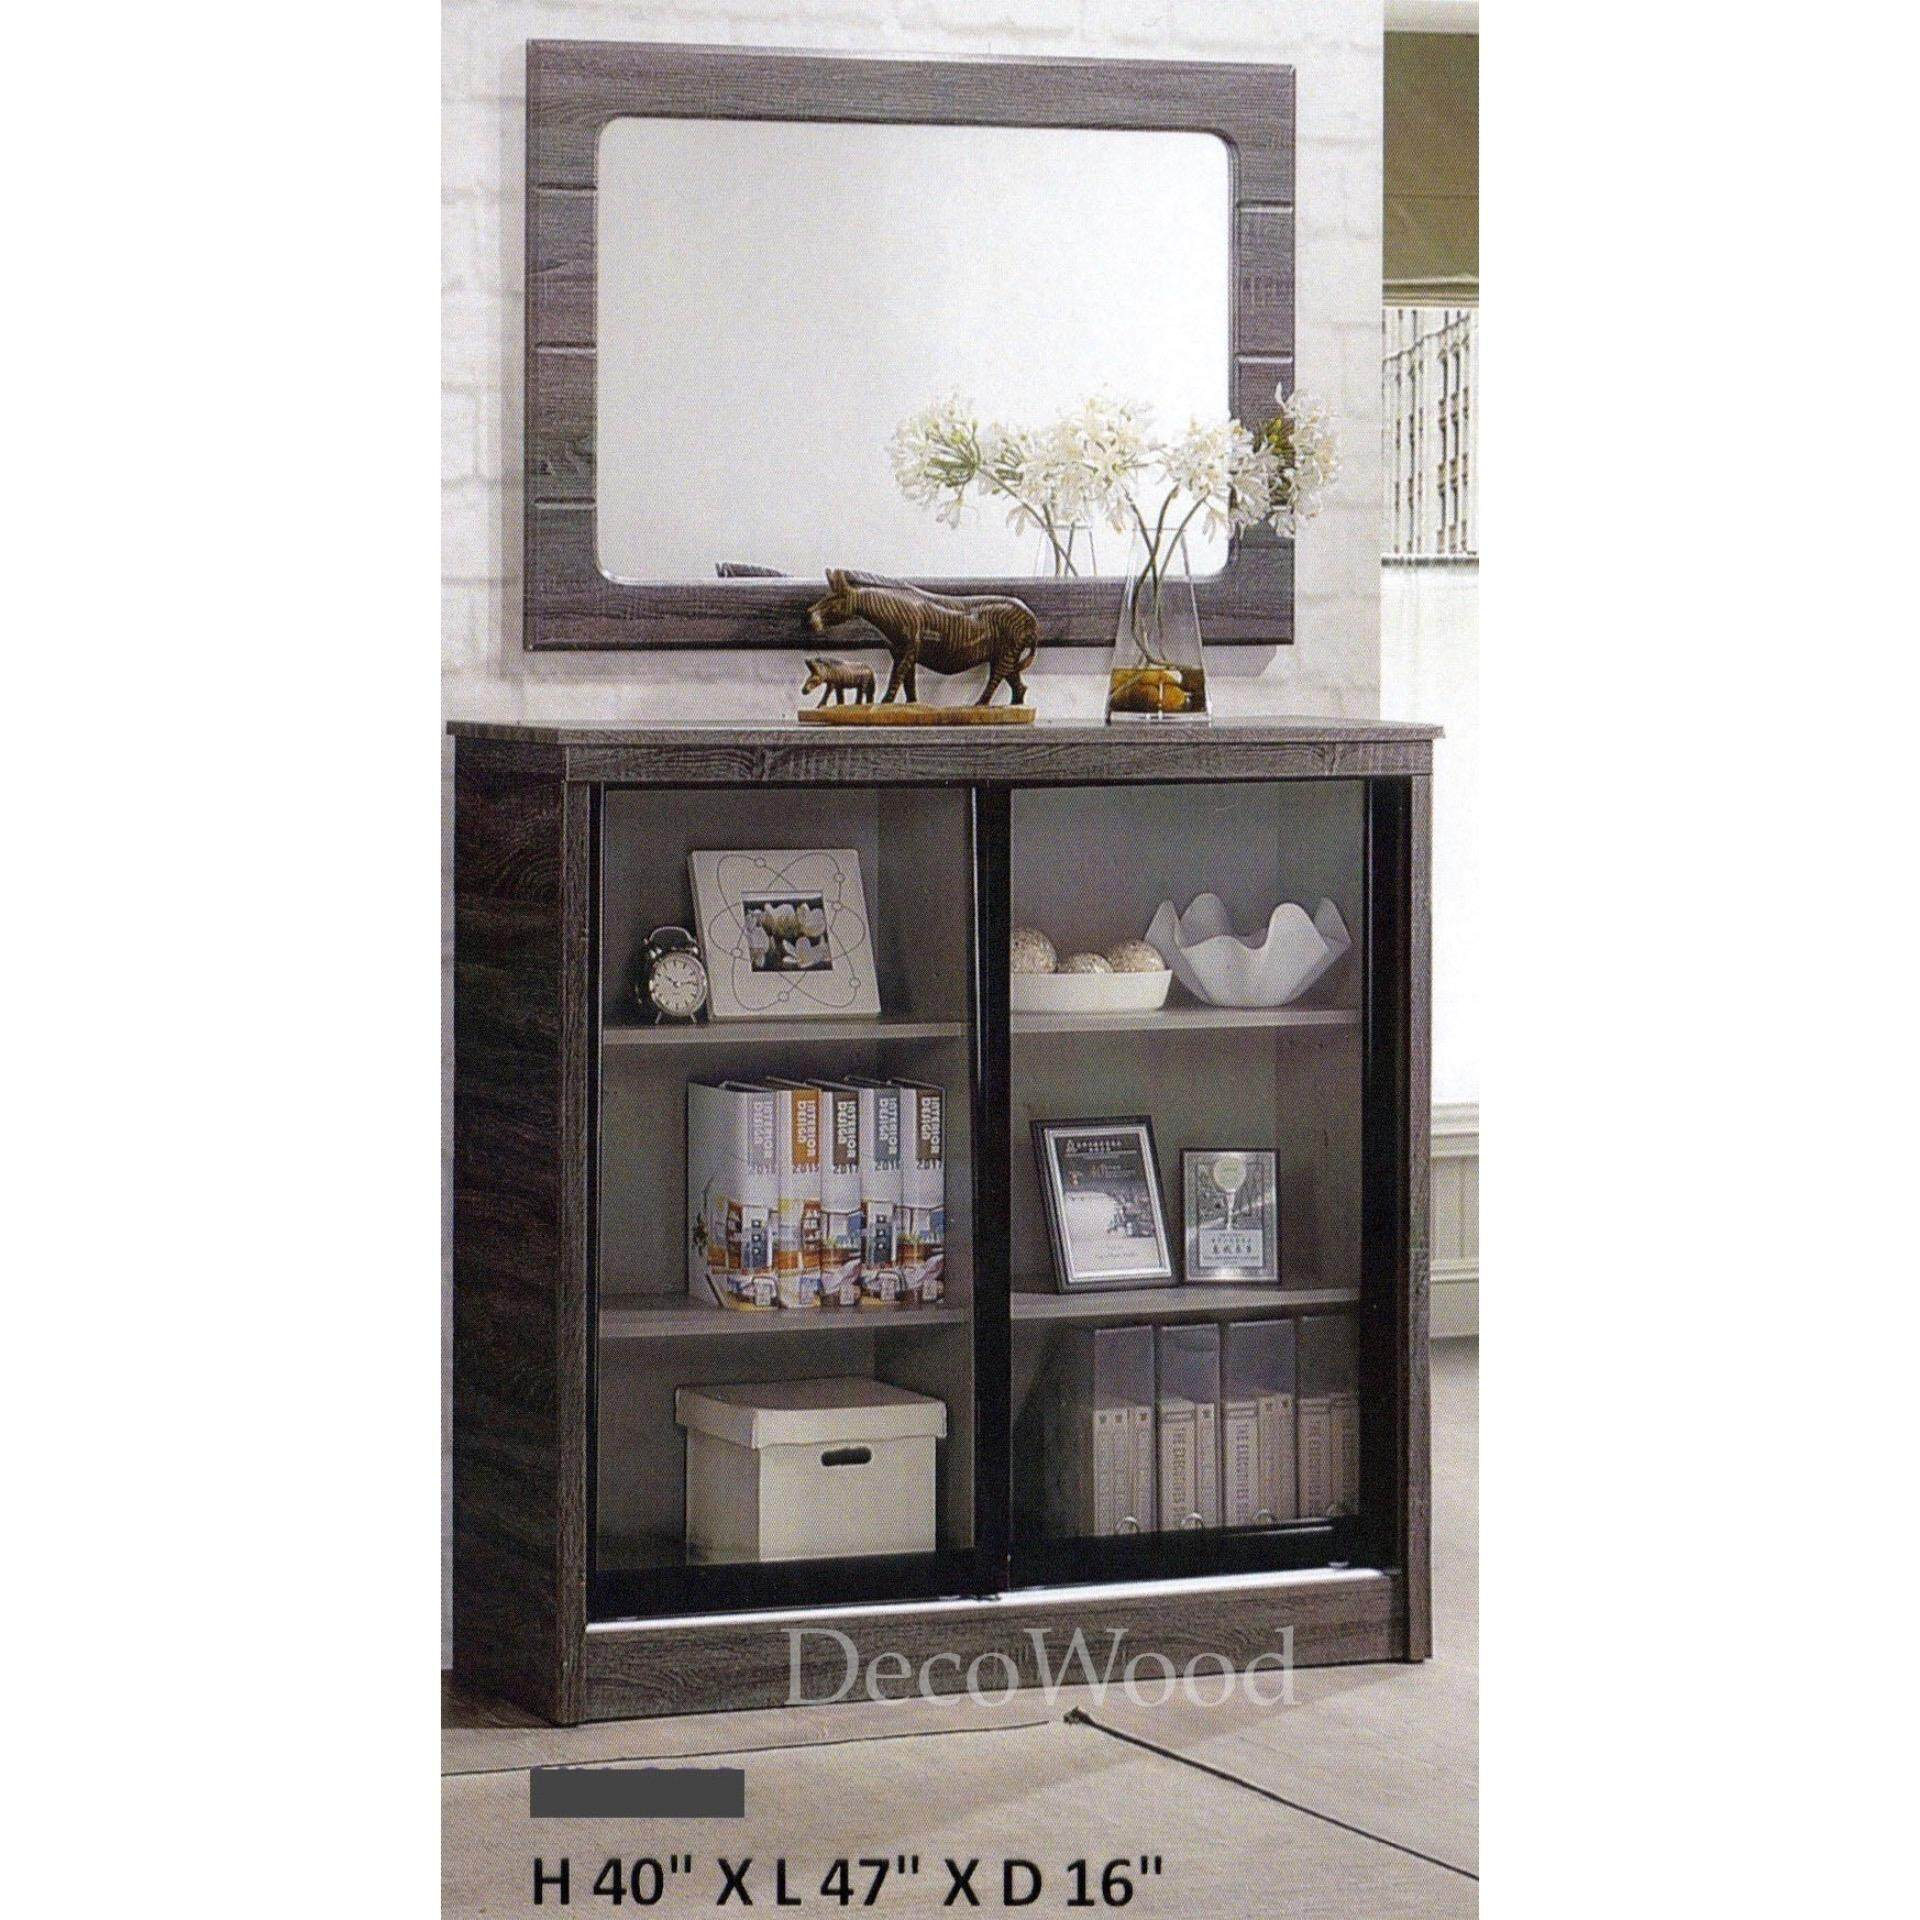 doors louvre sliding favored front for cabinet bookcases laudable with prodigious rare filing barrister aluminium lockable amazing full uncategorized system delicate size metal glass door bookcase of book reynaers cp mesmerize